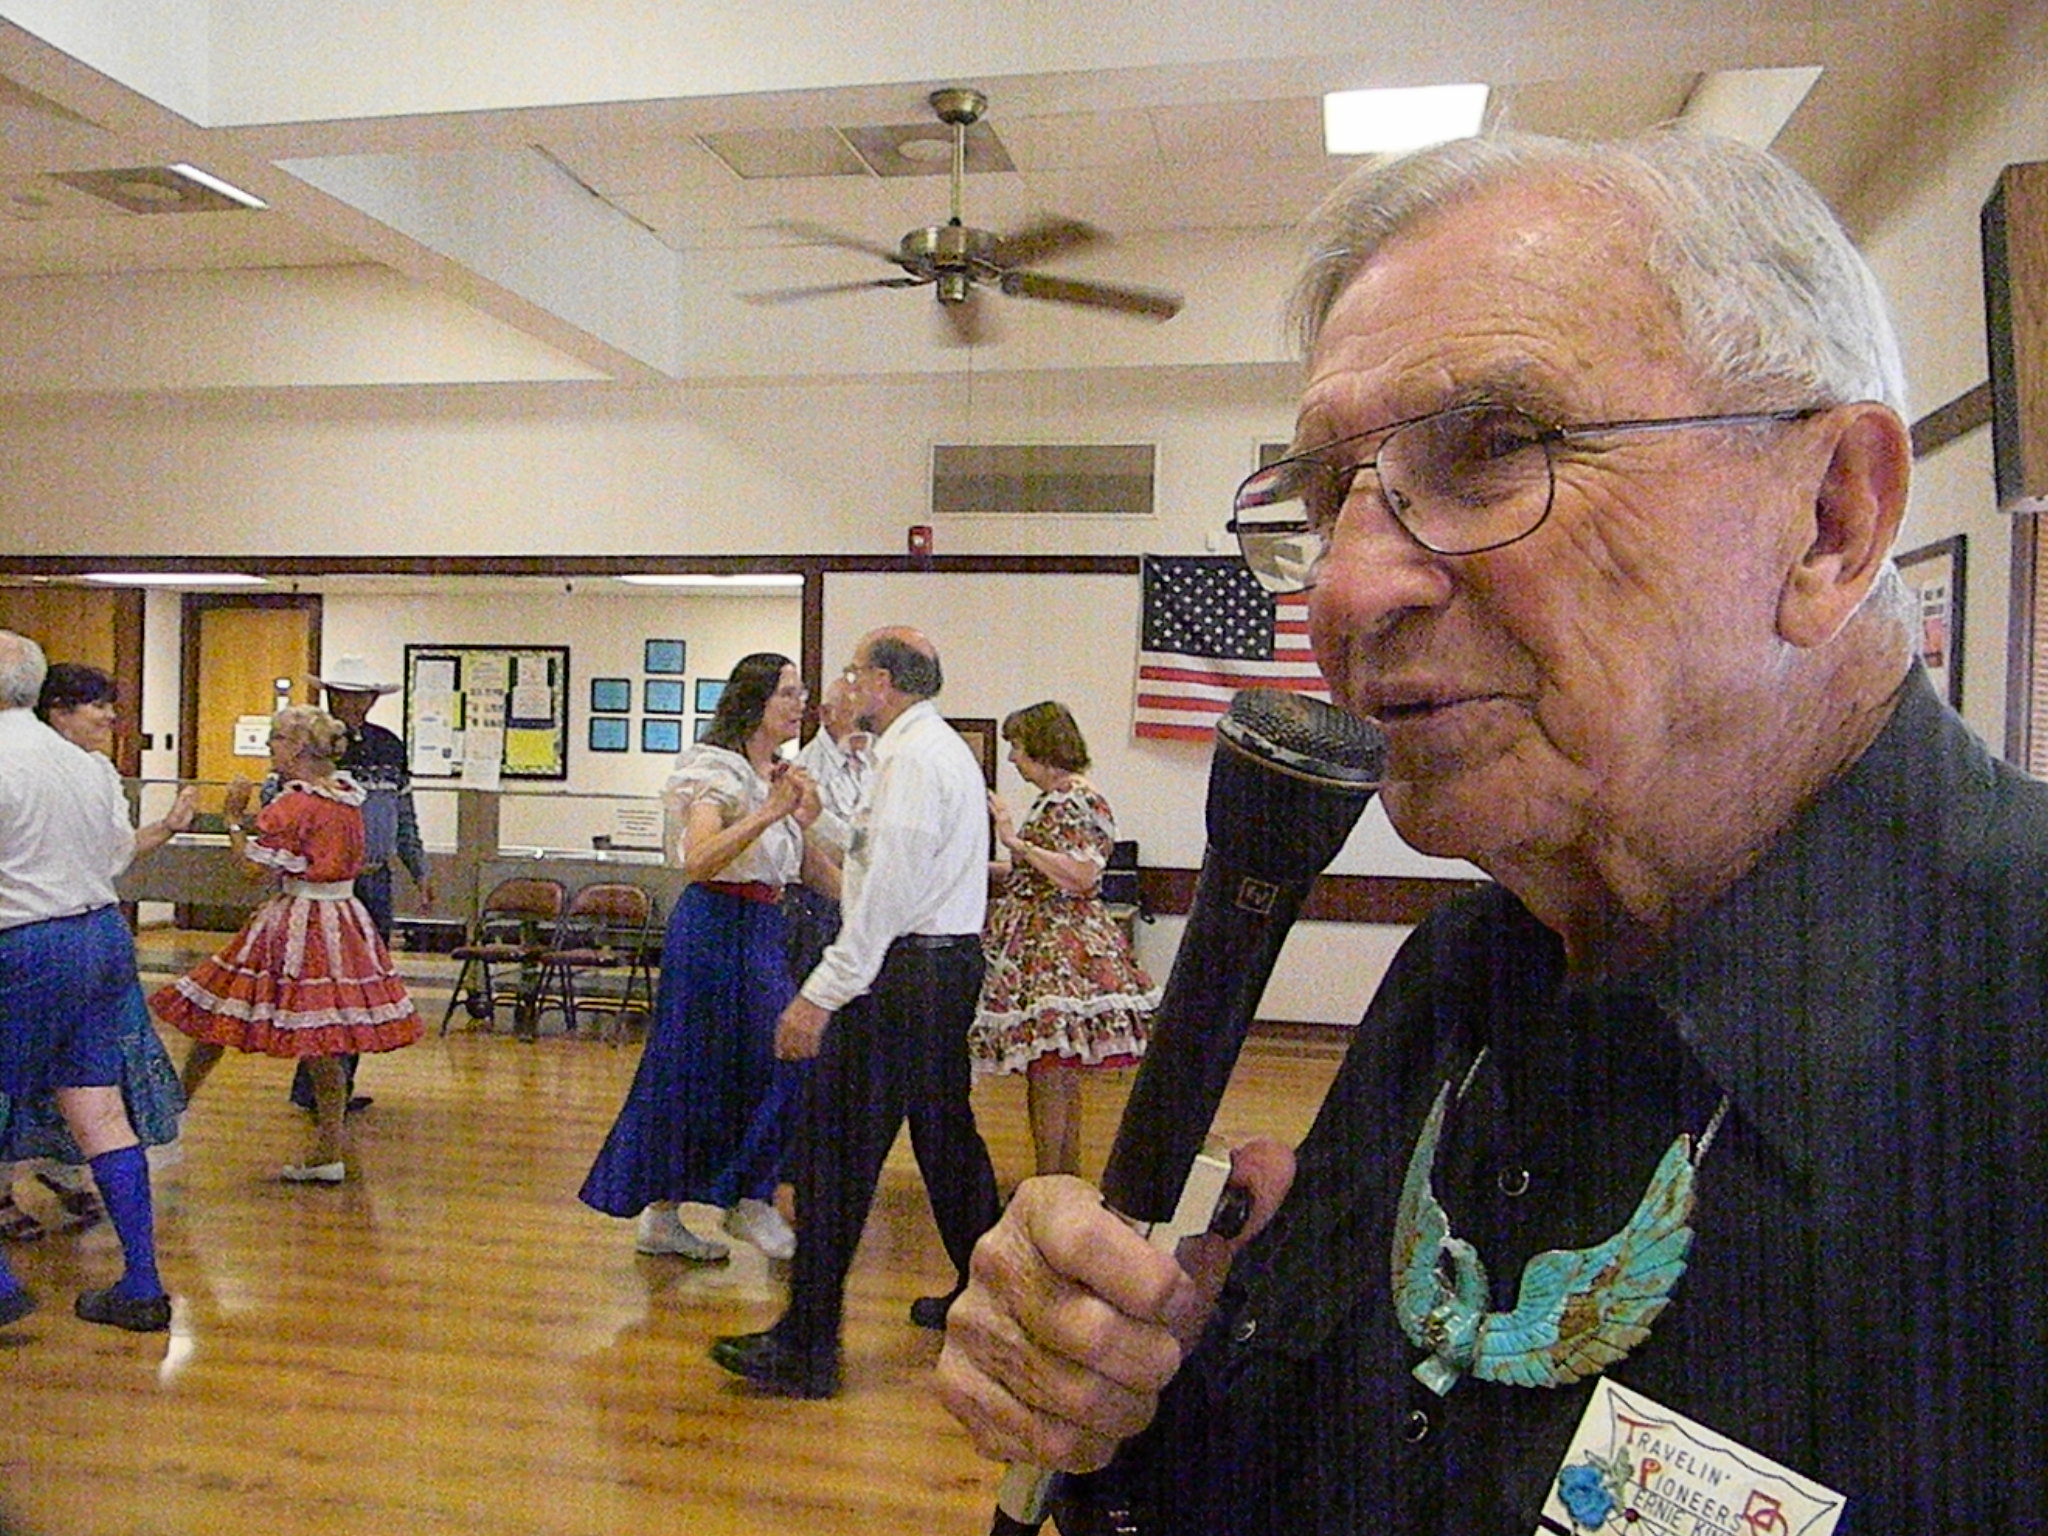 Ernie Kinney, the world's oldest active square dance caller, calls at the Clovis Senior Center every Thursday night. (Alice Daniel/KQED)